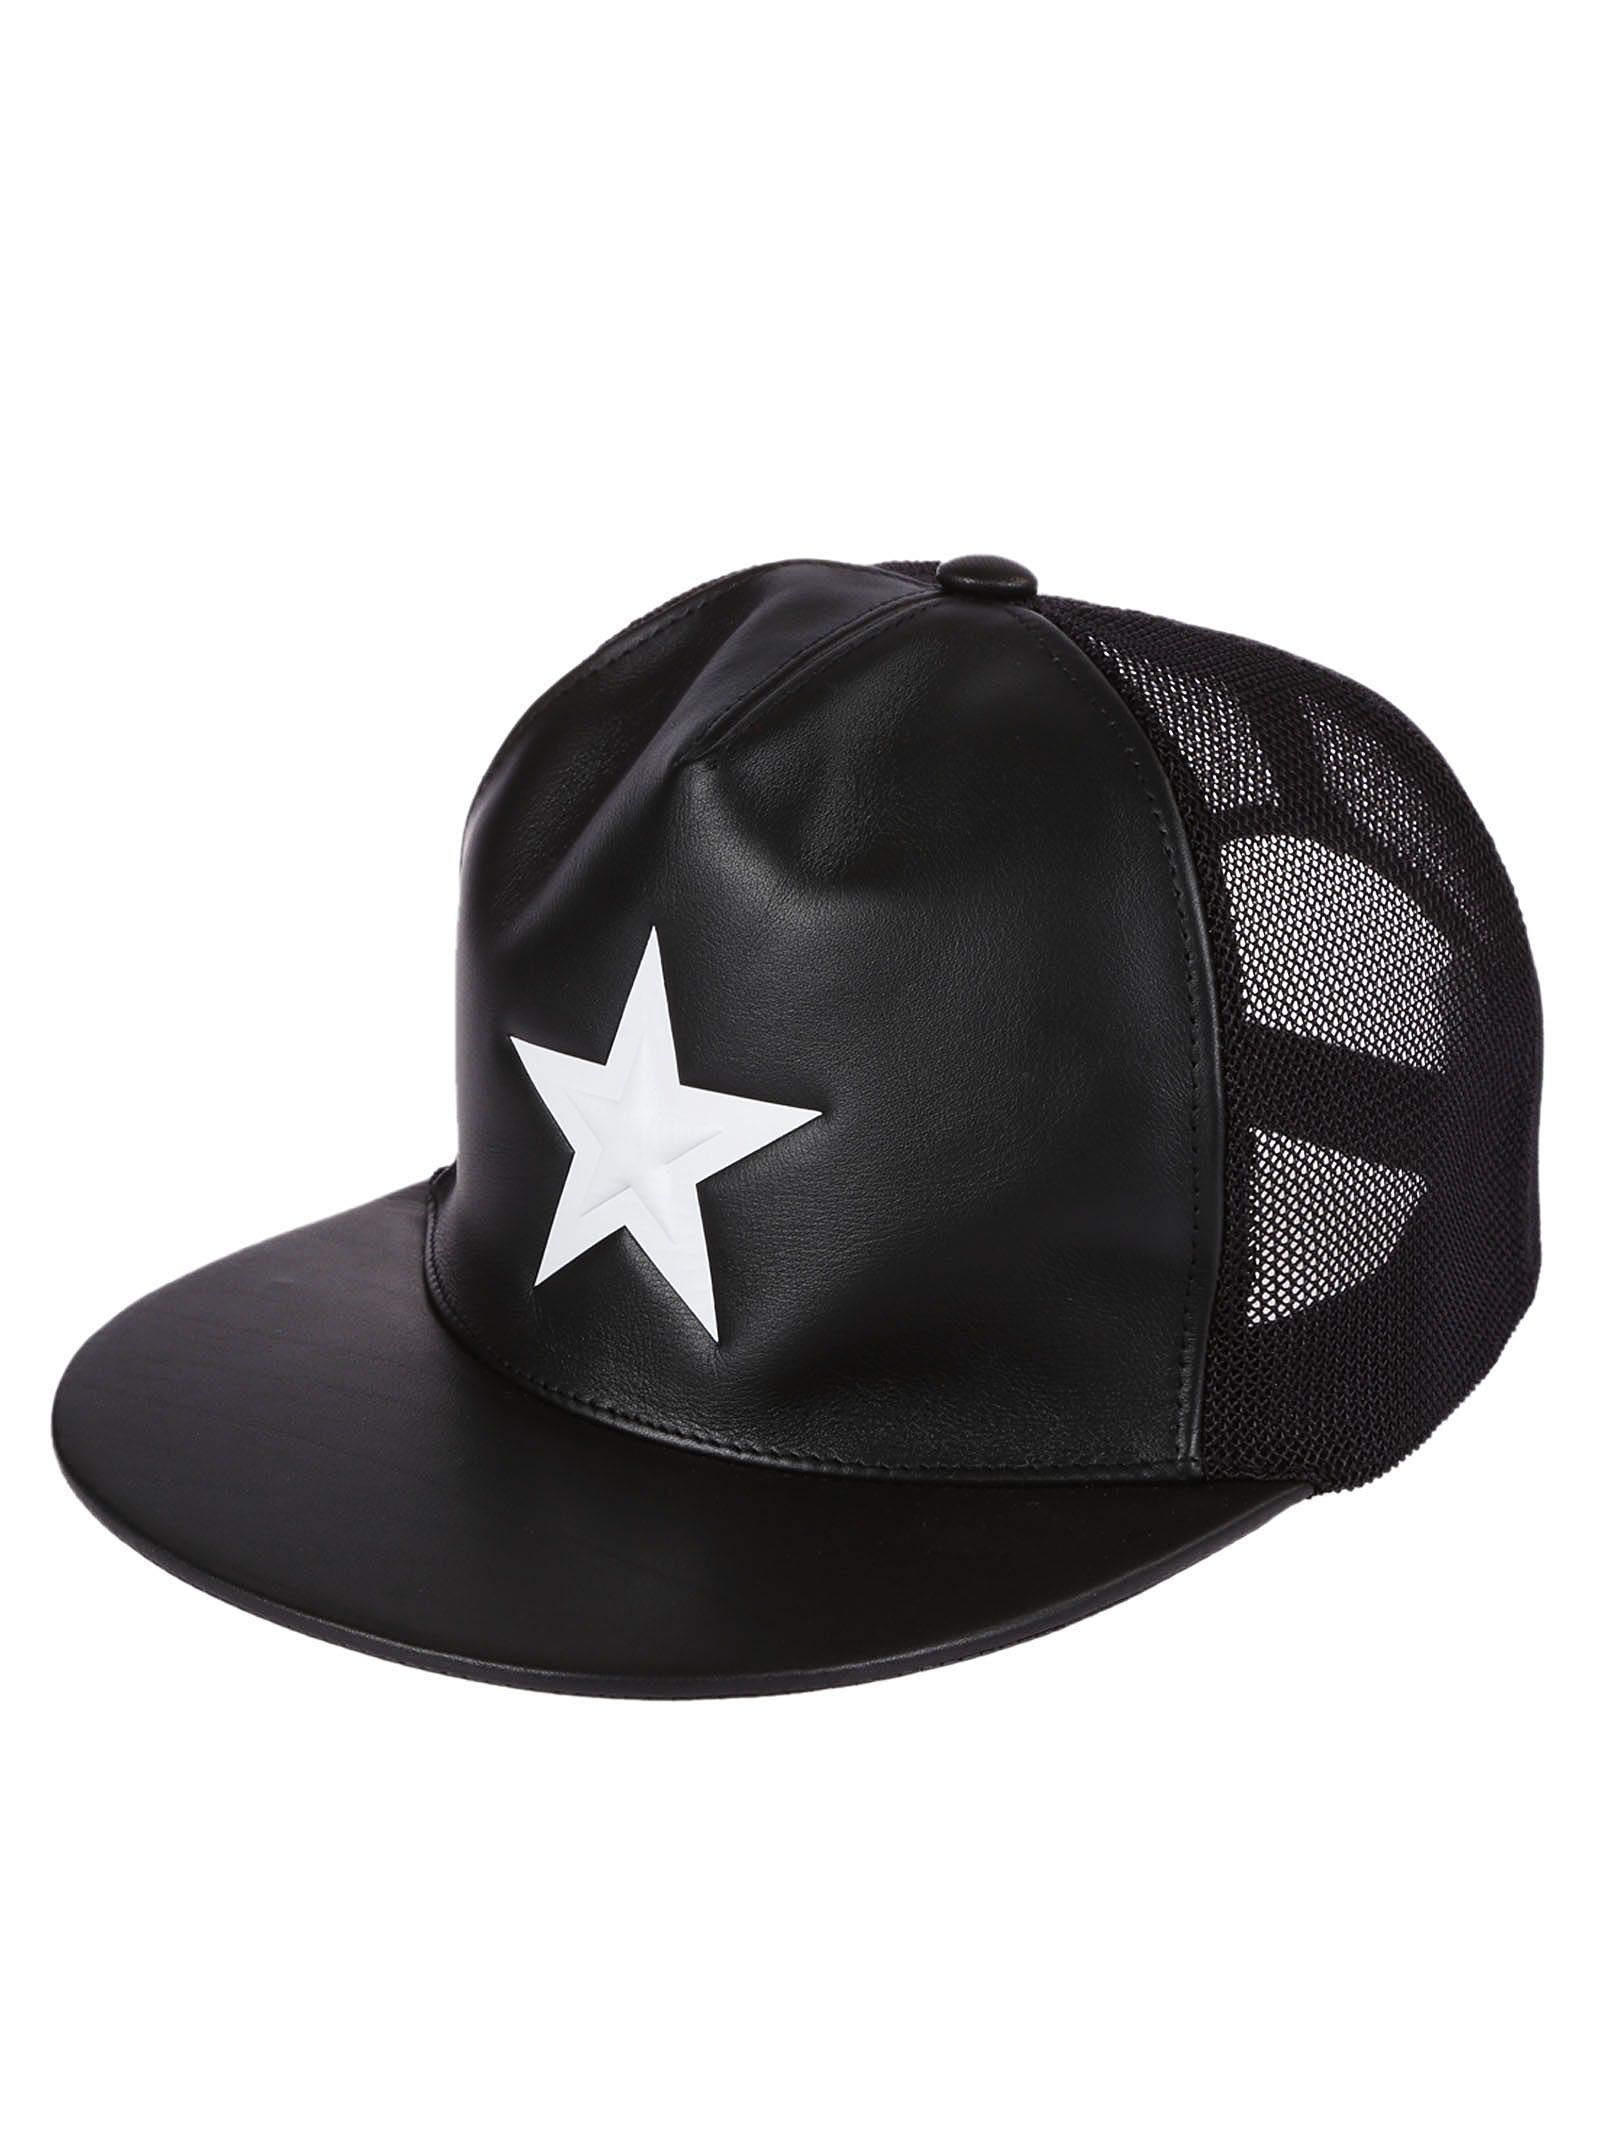 631ef48df18 GIVENCHY STAR CAP.  givenchy